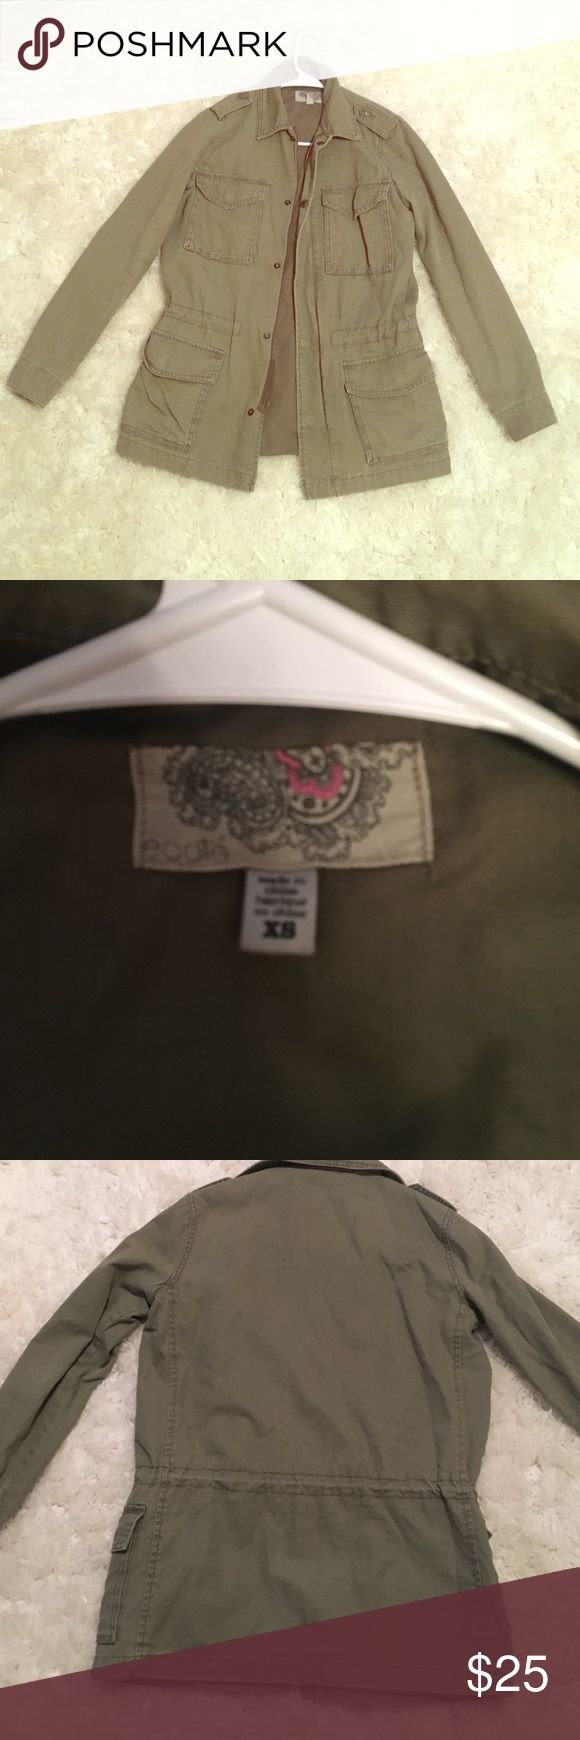 Olive/Army Green Utility Jacket (urban outfitters) Super cute and comfortable jacket from urban outfitters! In great condition! Size XS Urban Outfitters Jackets & Coats Utility Jackets